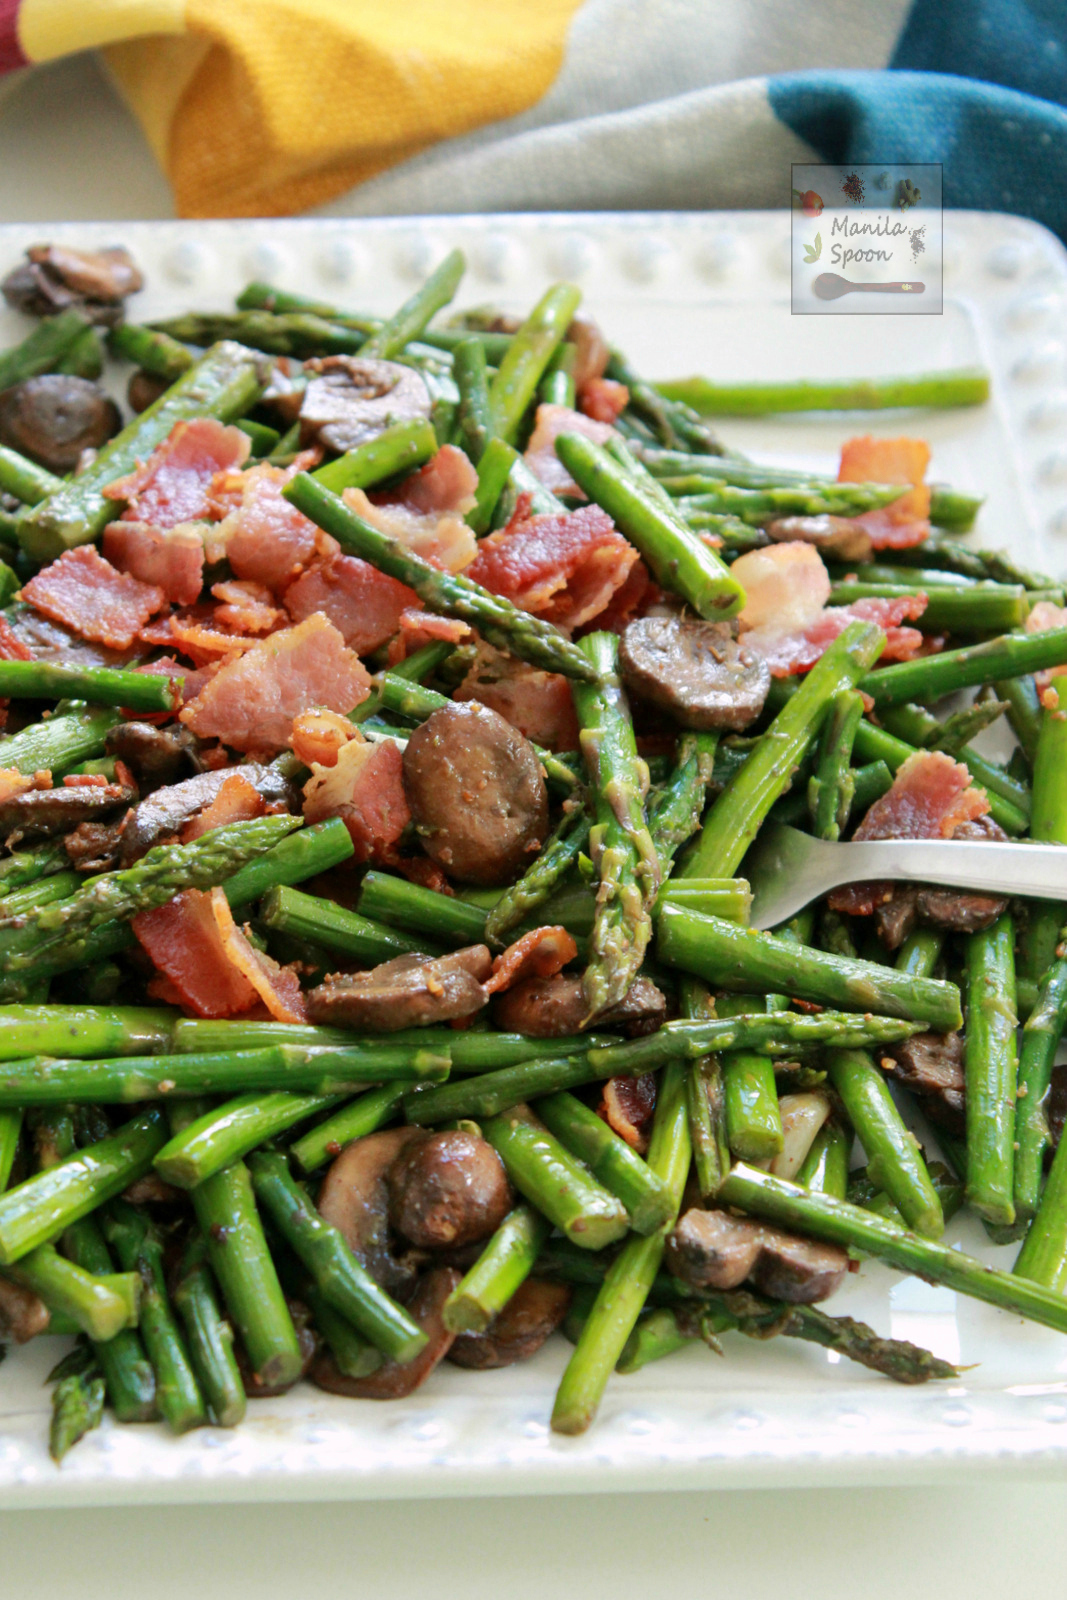 This quick and easy Asparagus dish is loaded with flavor from bacon and mushrooms! Done in 15 minutes or less. Totally gluten-free and low-carb, too.